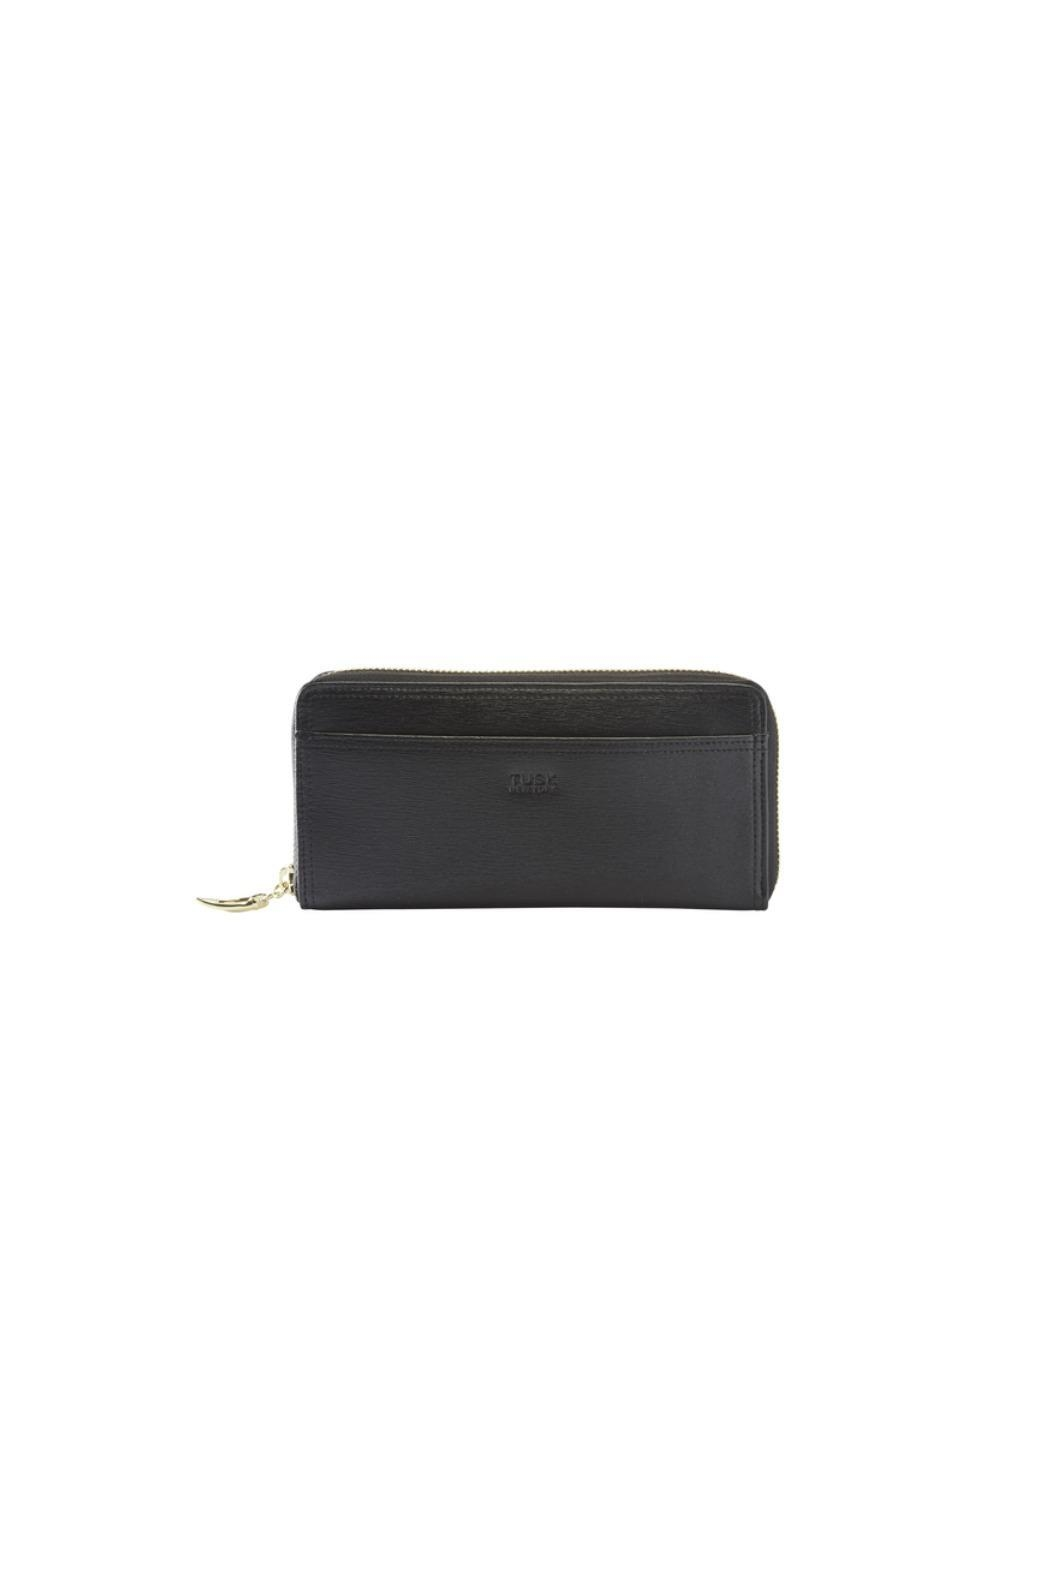 tusk Single Zip Gusseted Clutch Wallet - Front Full Image